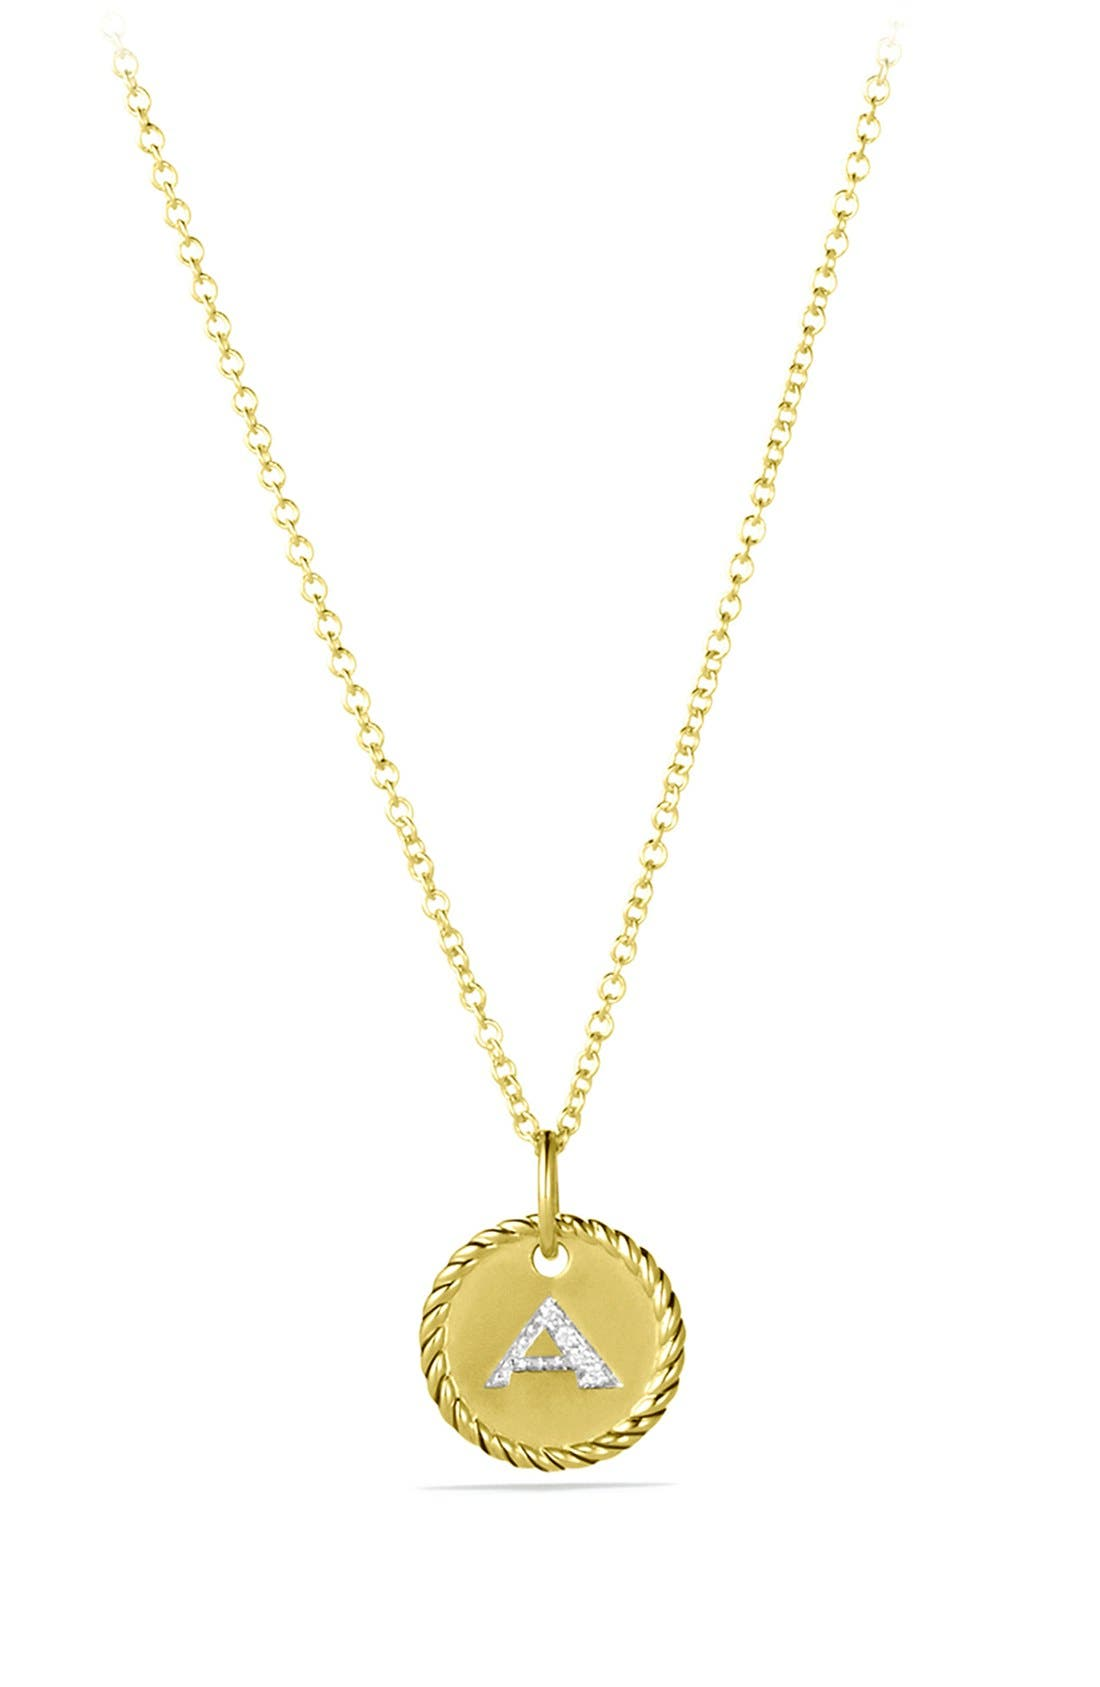 ardson by necklace pendant bitcoin btc product gold bit